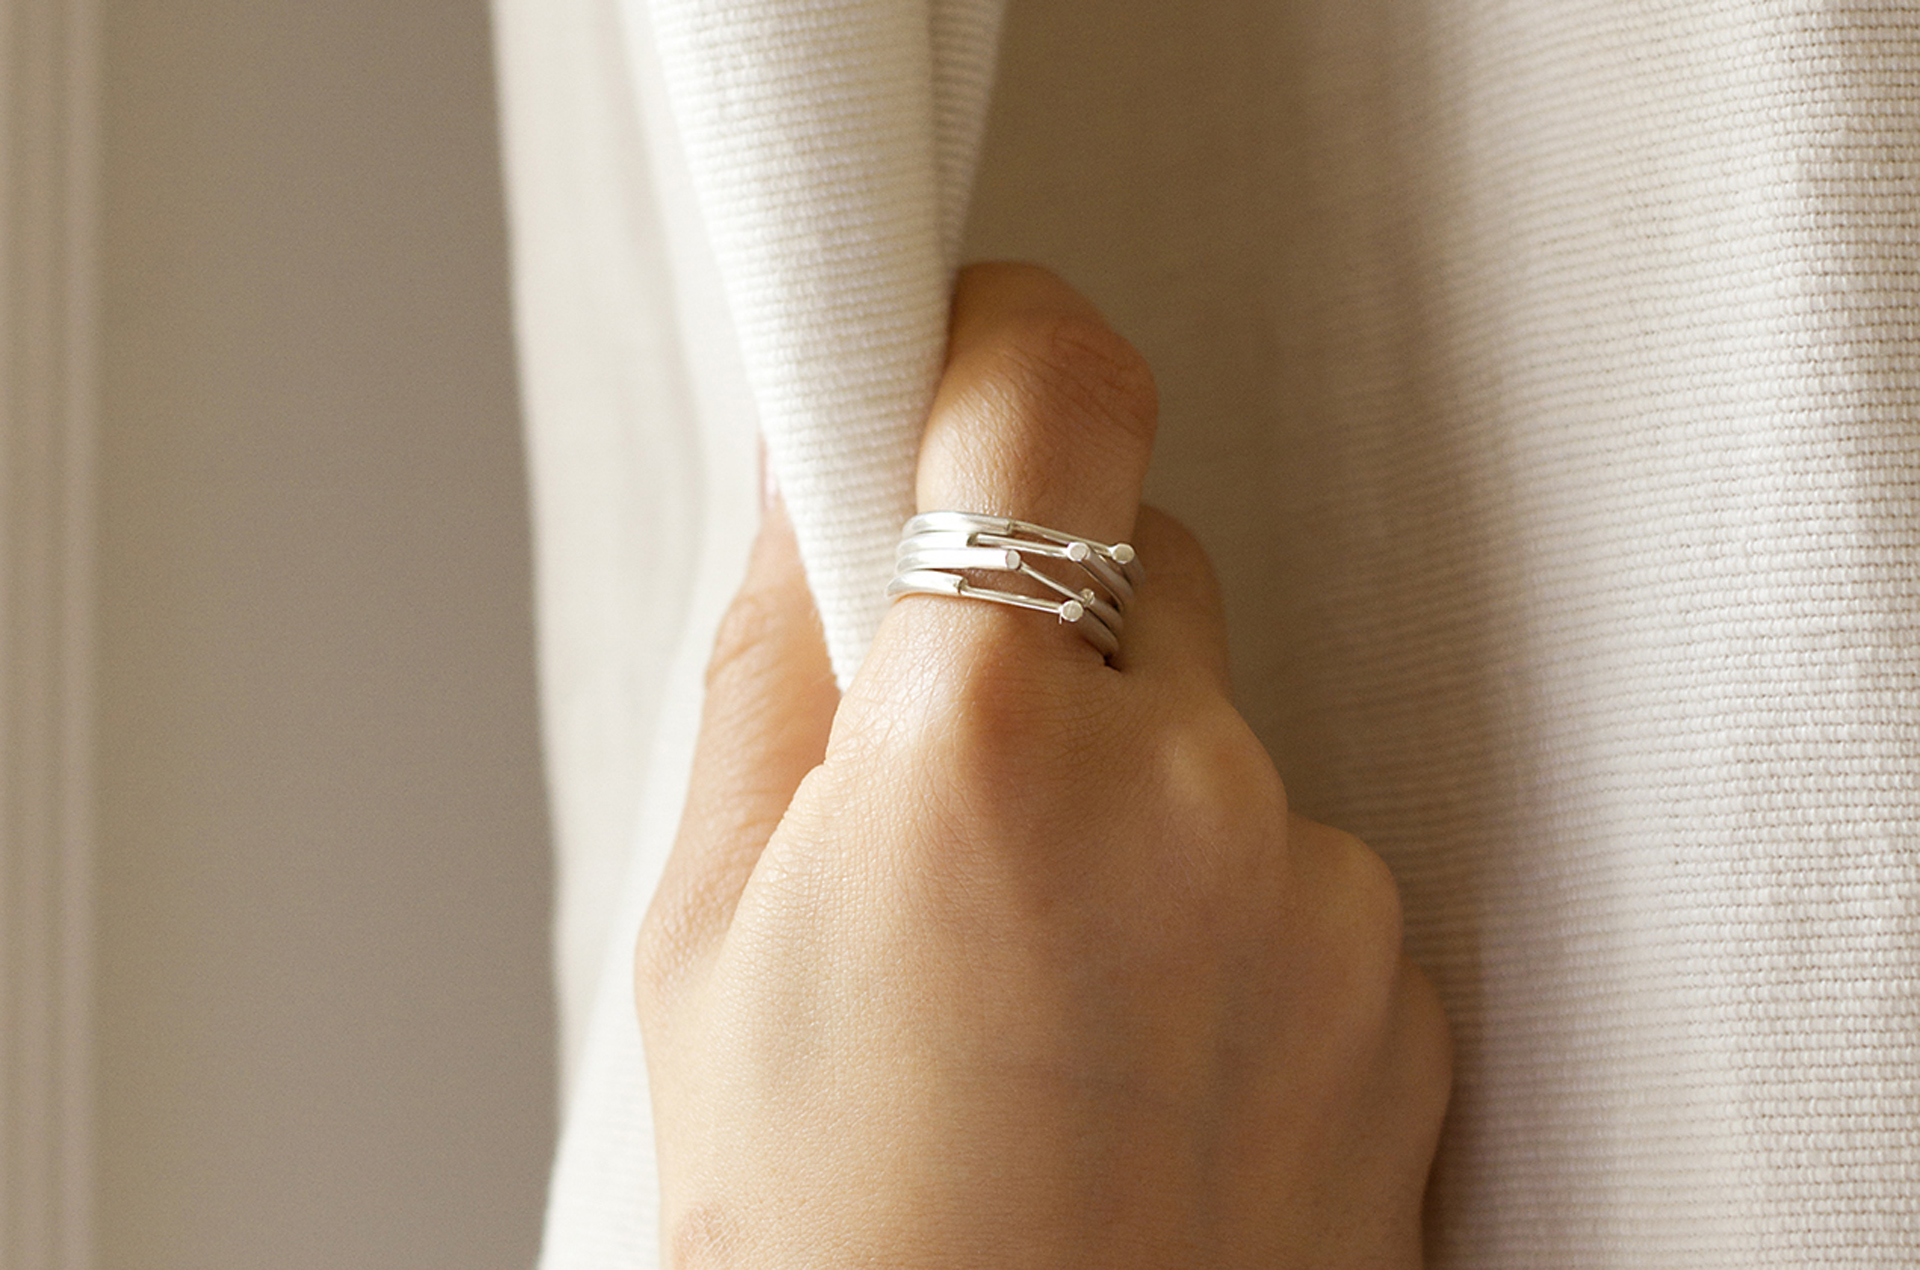 Ruth Leslie Nook rings stacked